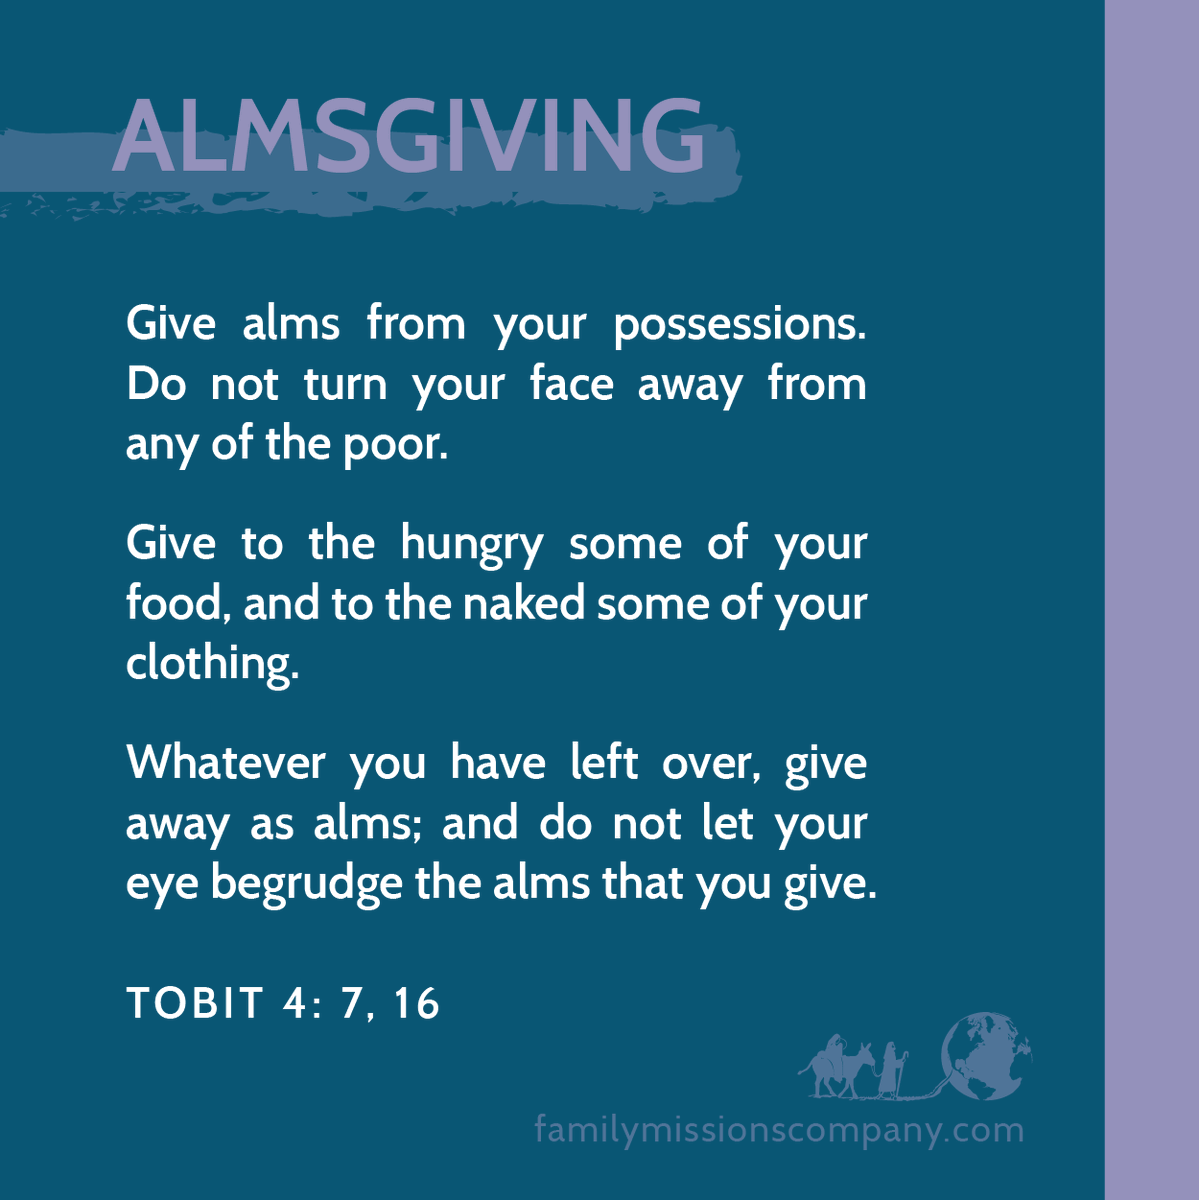 #Prayer and #fasting we get, but #almsgiving is a Lenten practice that can easily be overlooked.   The book of Tobit reminds us to give to the poor and not to turn our face away from them. Who are the poor in my life? I may not have to go far to see them.  #LentenSeason #catholic